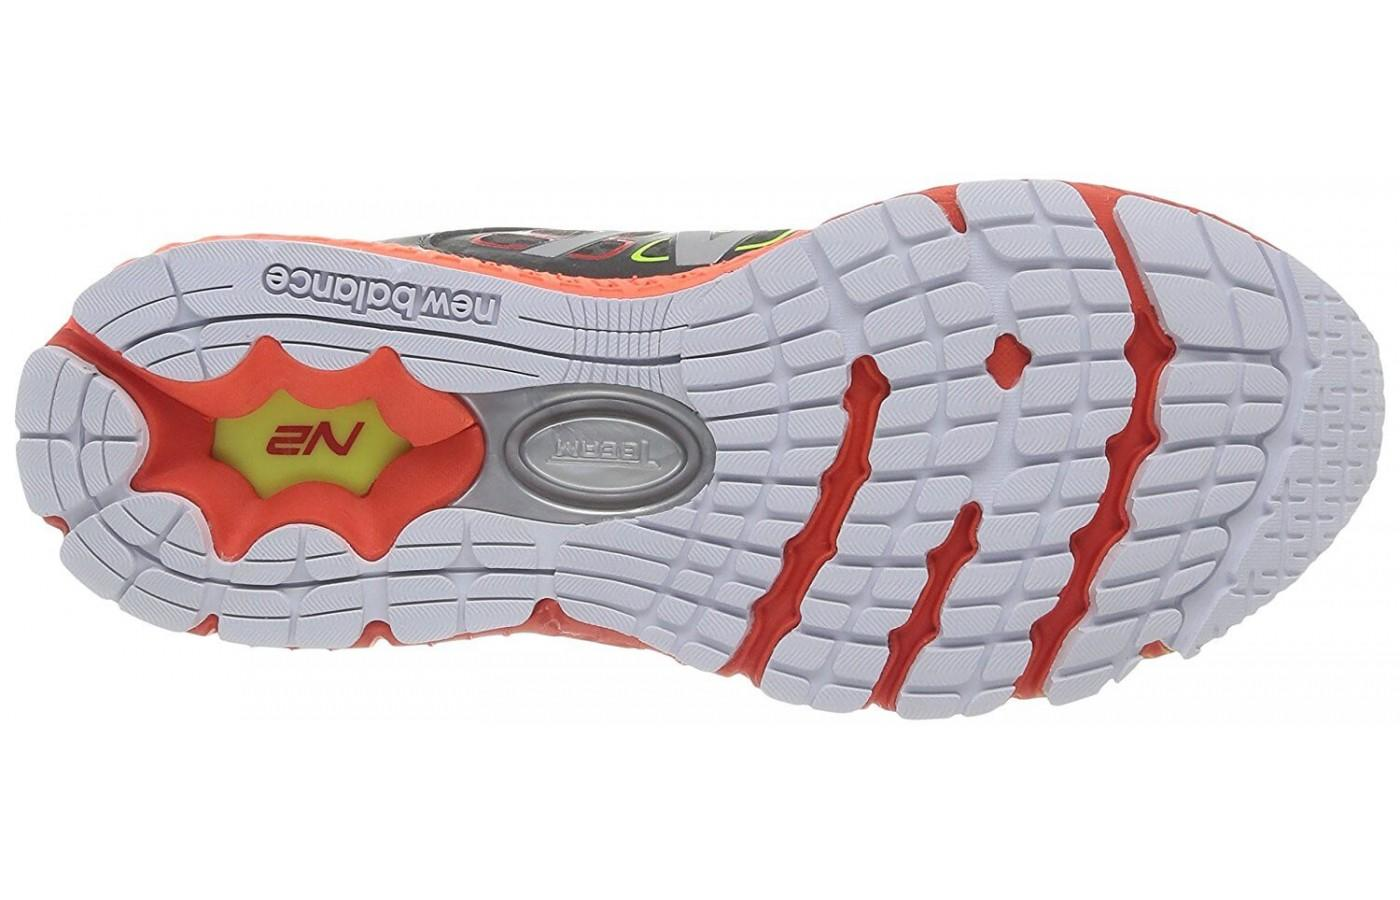 New Balance 1260v4 flexible outsole